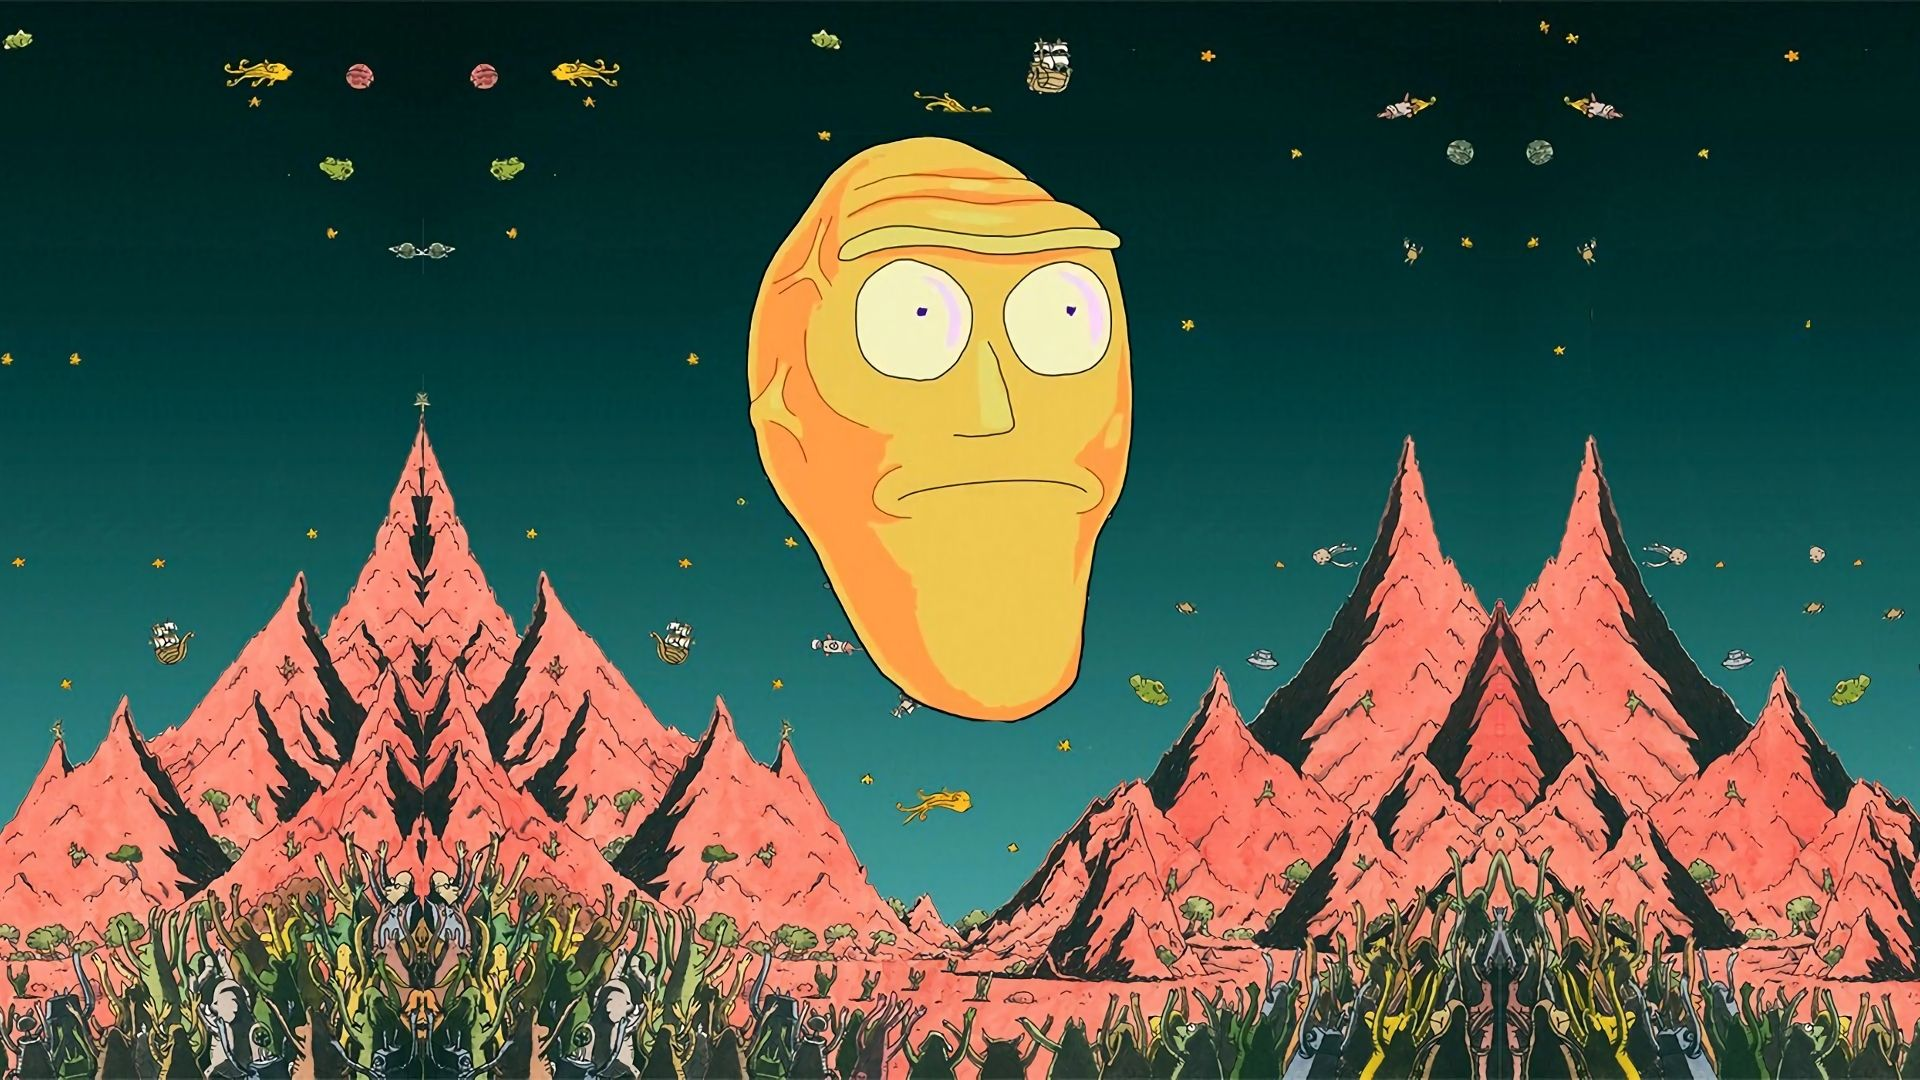 Rick And Morty Wallpaper Giant Heads 2021 Live Wallpaper Hd Cartoon Wallpaper Desktop Wallpaper Art Art Wallpaper